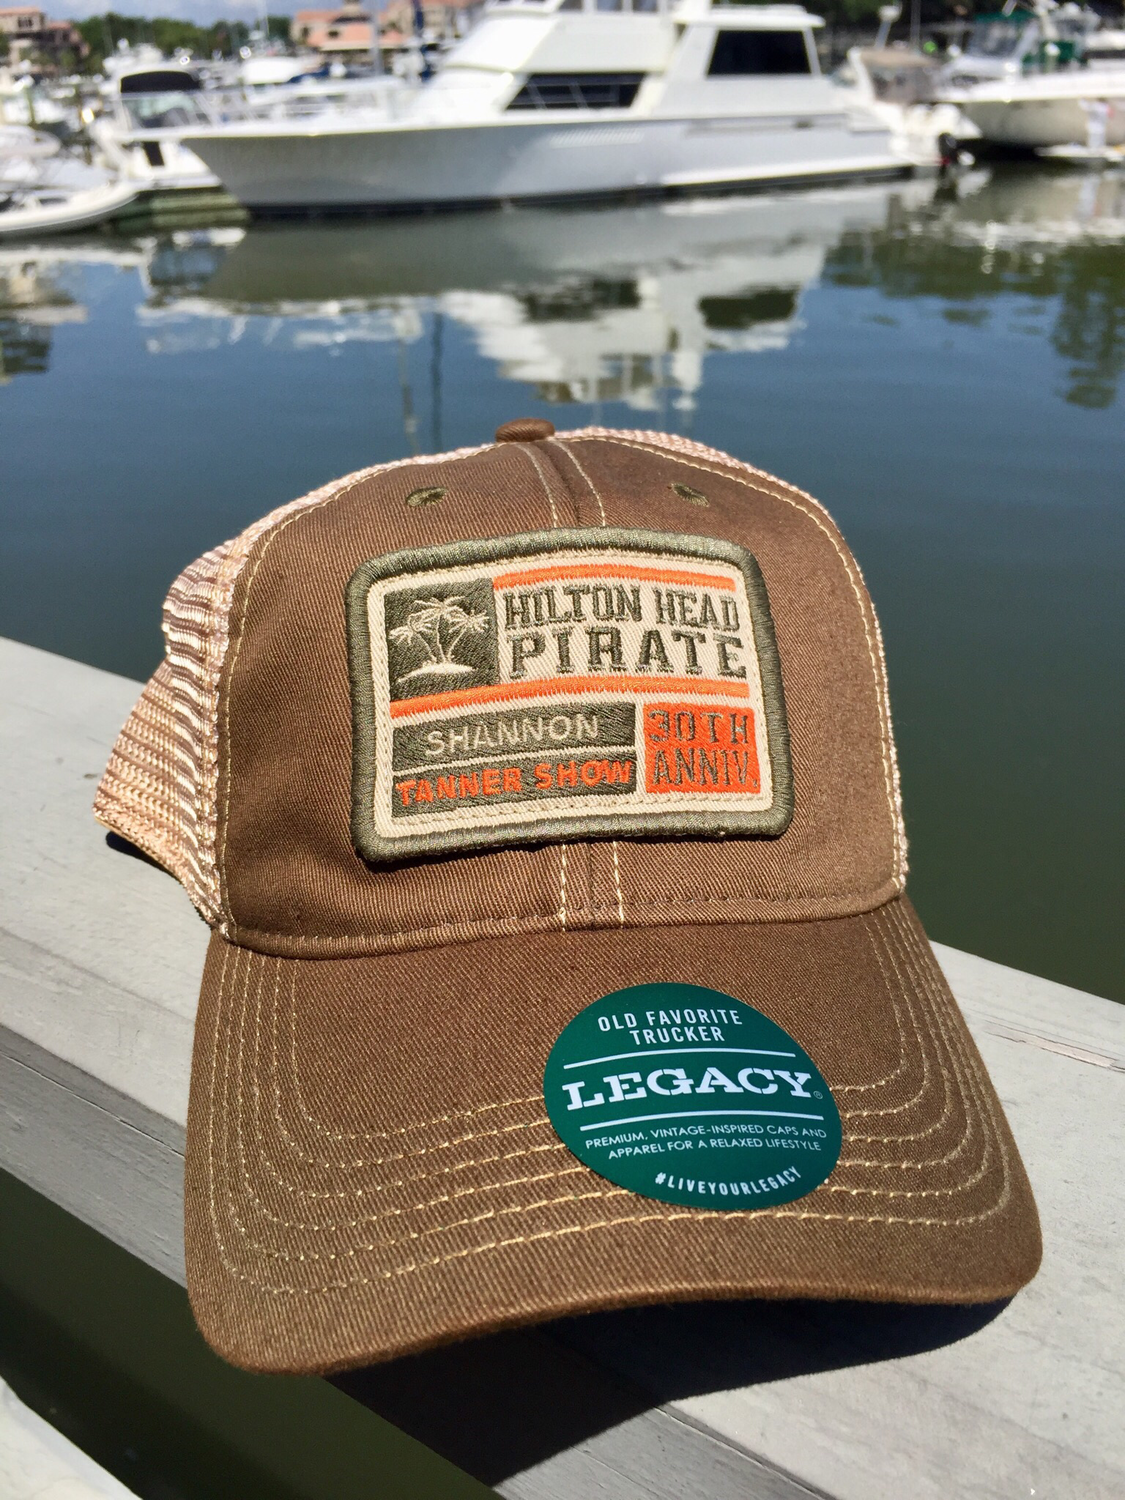 30th Anniversary Legacy Trucker Hat Olive